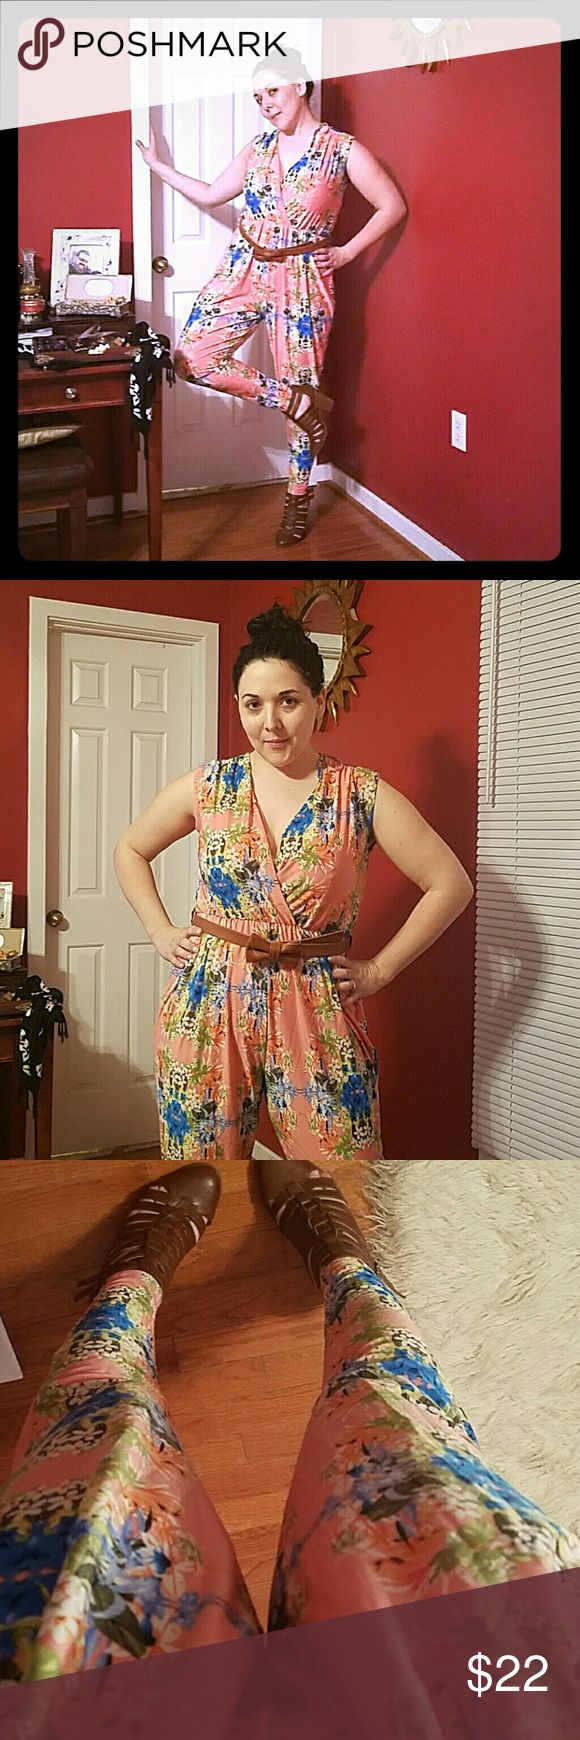 UK2LA Adorable Spring Romper! PINK Floral jumper with tie back. Very forgiving and perfect for Valentines Day! Polyester Spandex mix. UK2LA Pants Jumpsuits & Rompers